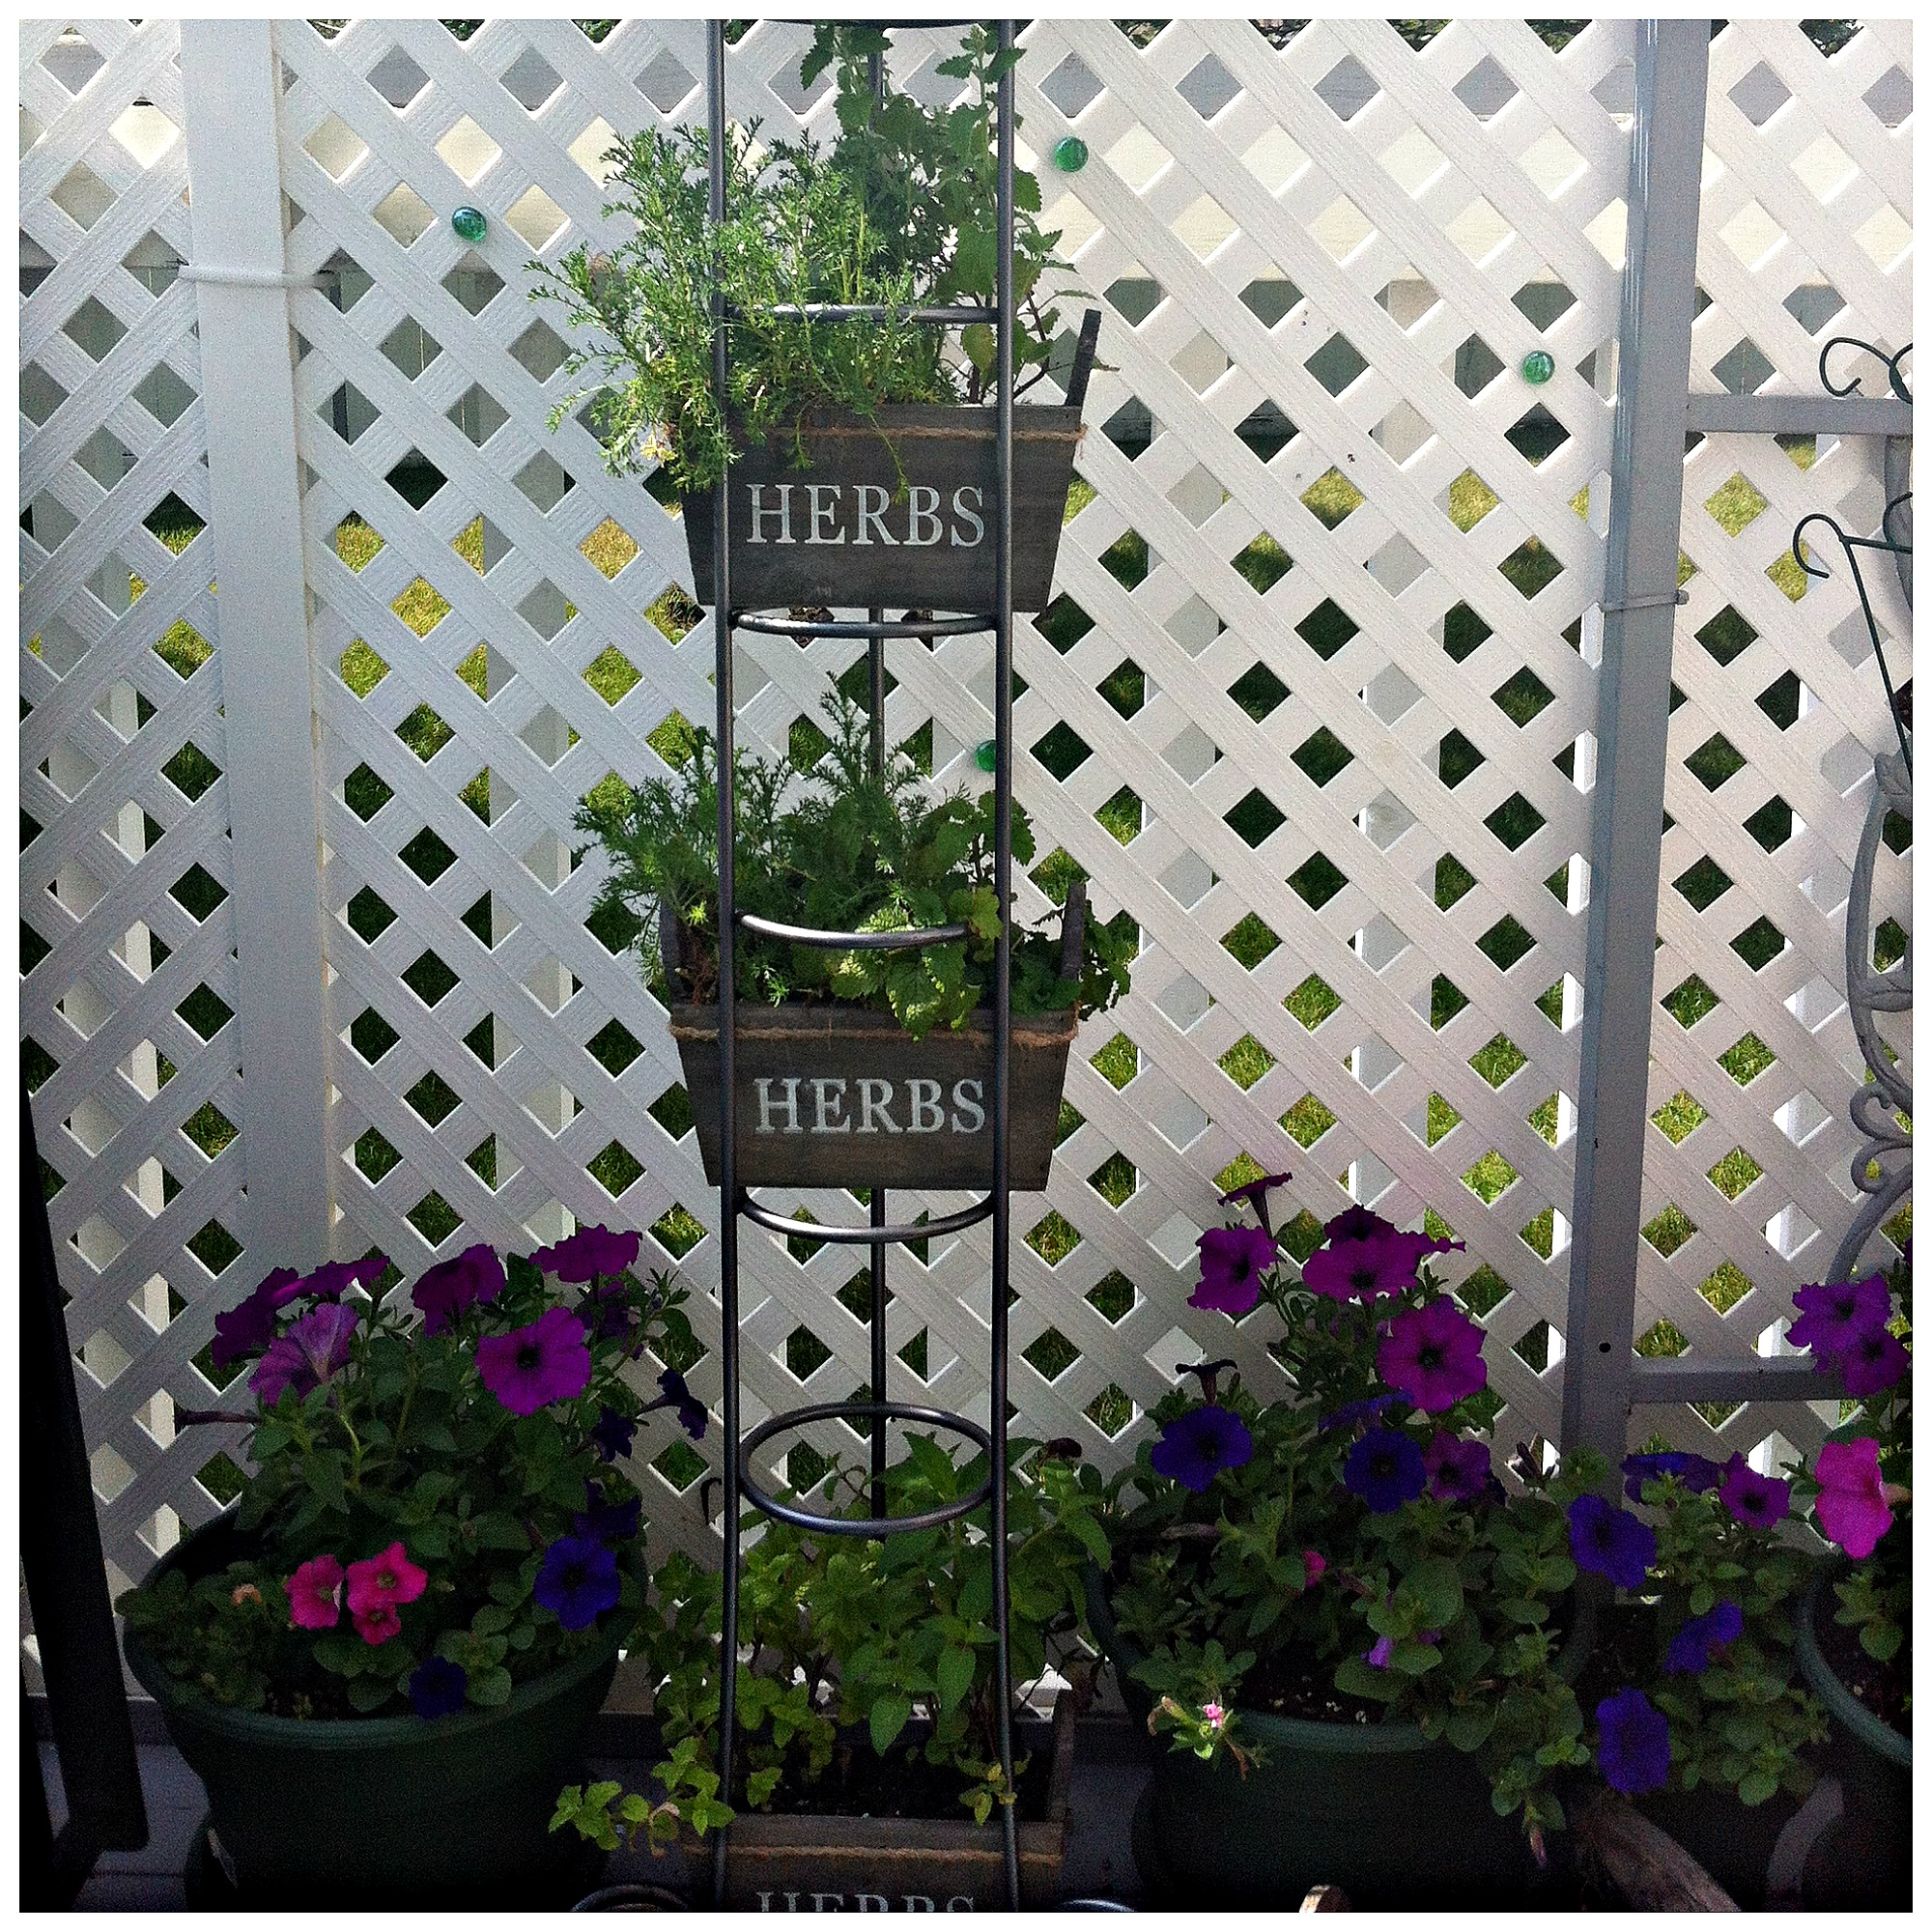 CD Rack Herb Garden 8 DIY Patio Accents #trashtotreasure #patio #diy #yard #garden #up-cycle #re-purpose #patio_table #plant_stand #bird_bath #herb_garden